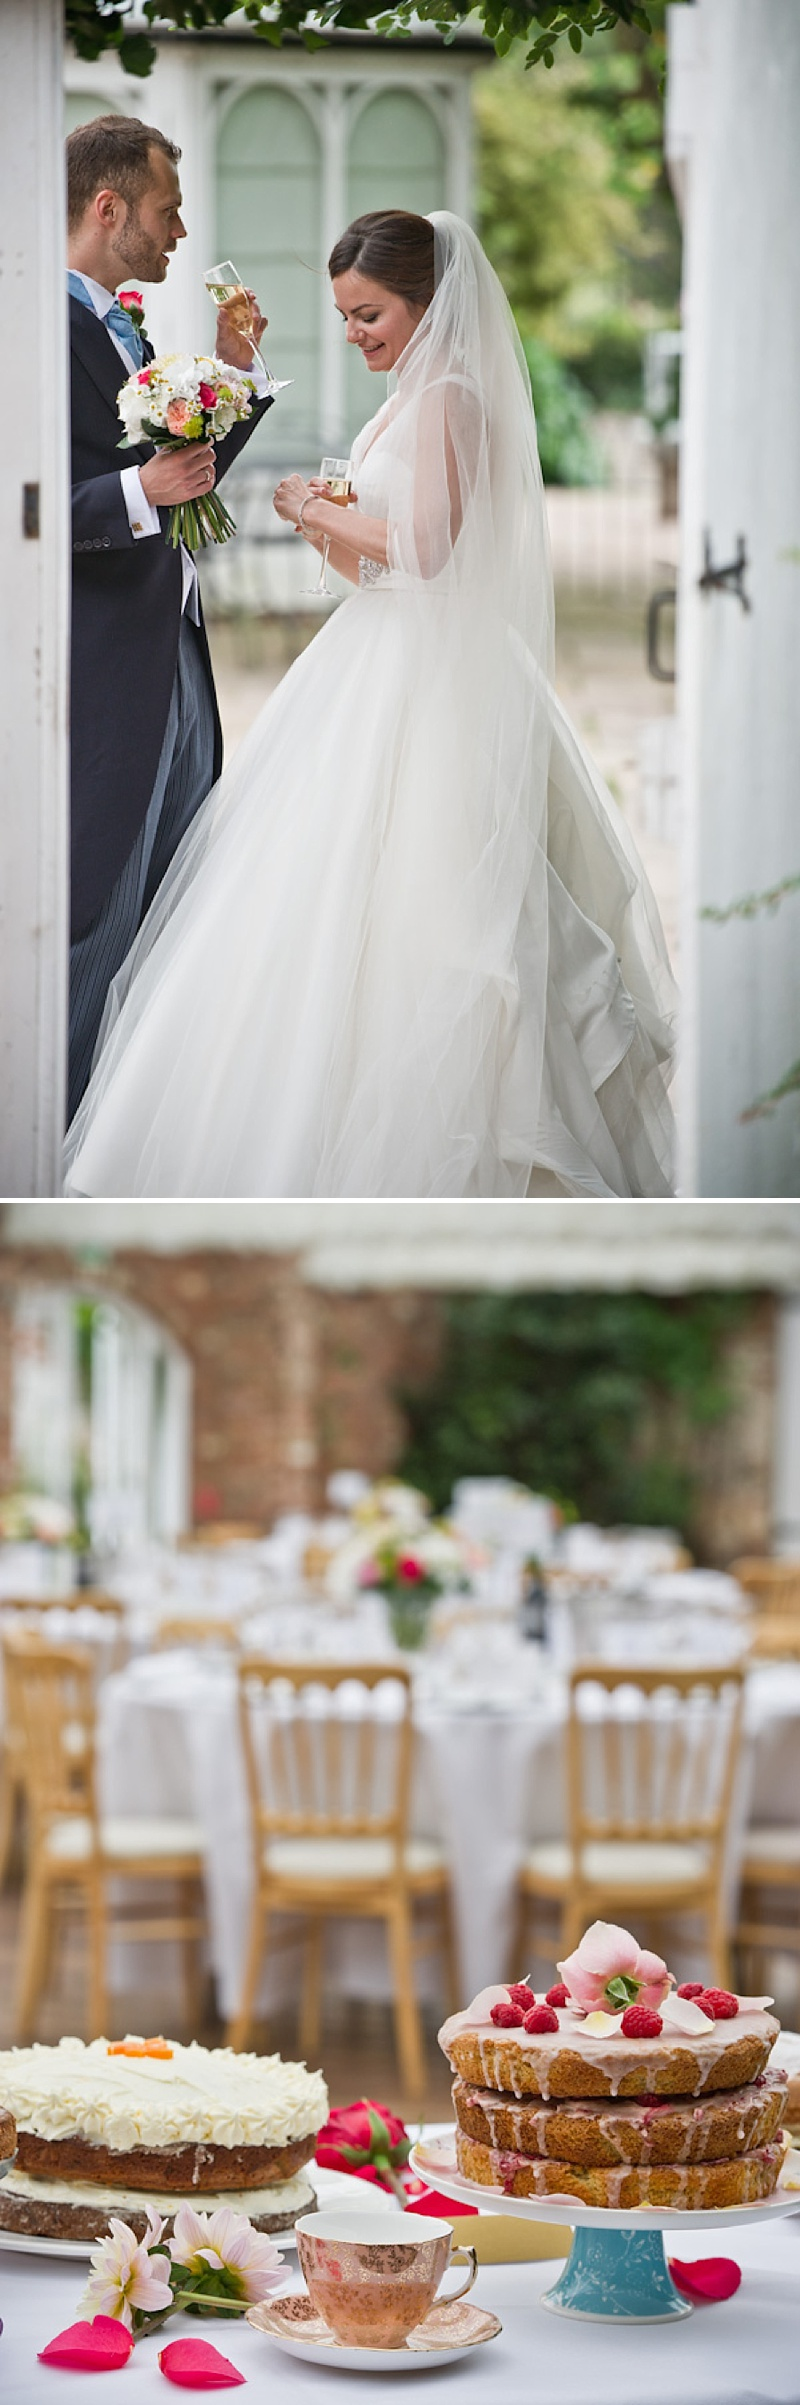 An Elegant Contemporary Wedding At Northbrook Park Farnham With Bride In Ellis Bridal Gown And Blue Benjamin Adams Shoes And Bridesmaids In Ted Baker Images By Especially Amy_0015